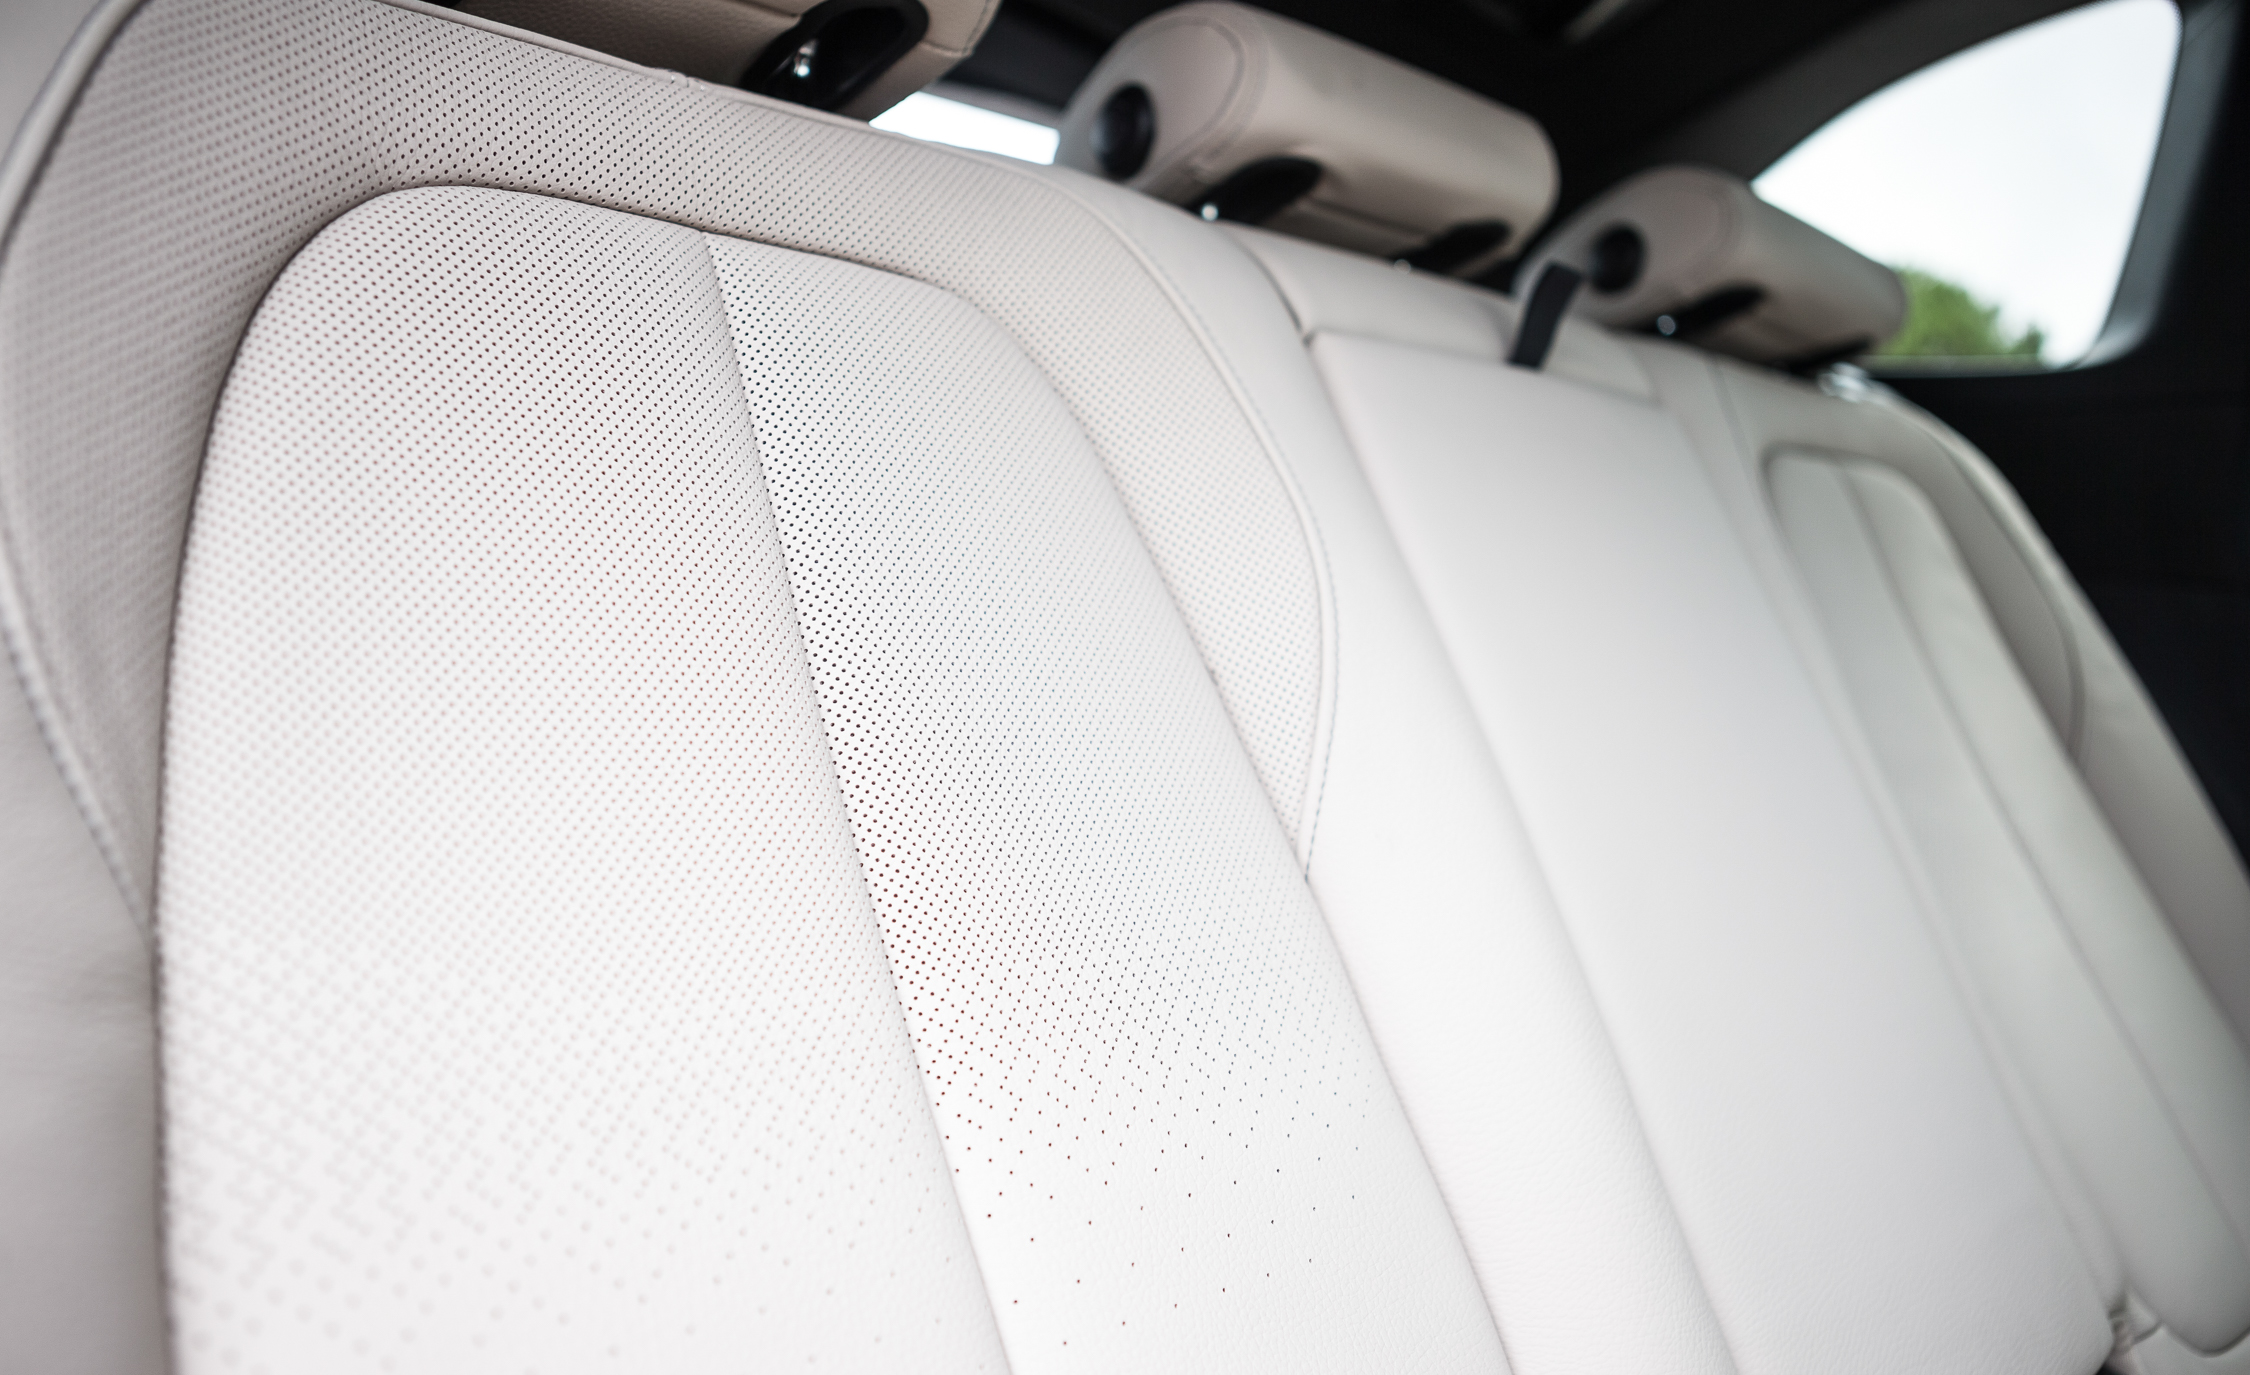 2016 BMW X1 Interior Seats Rear Leather Details (Photo 21 of 36)